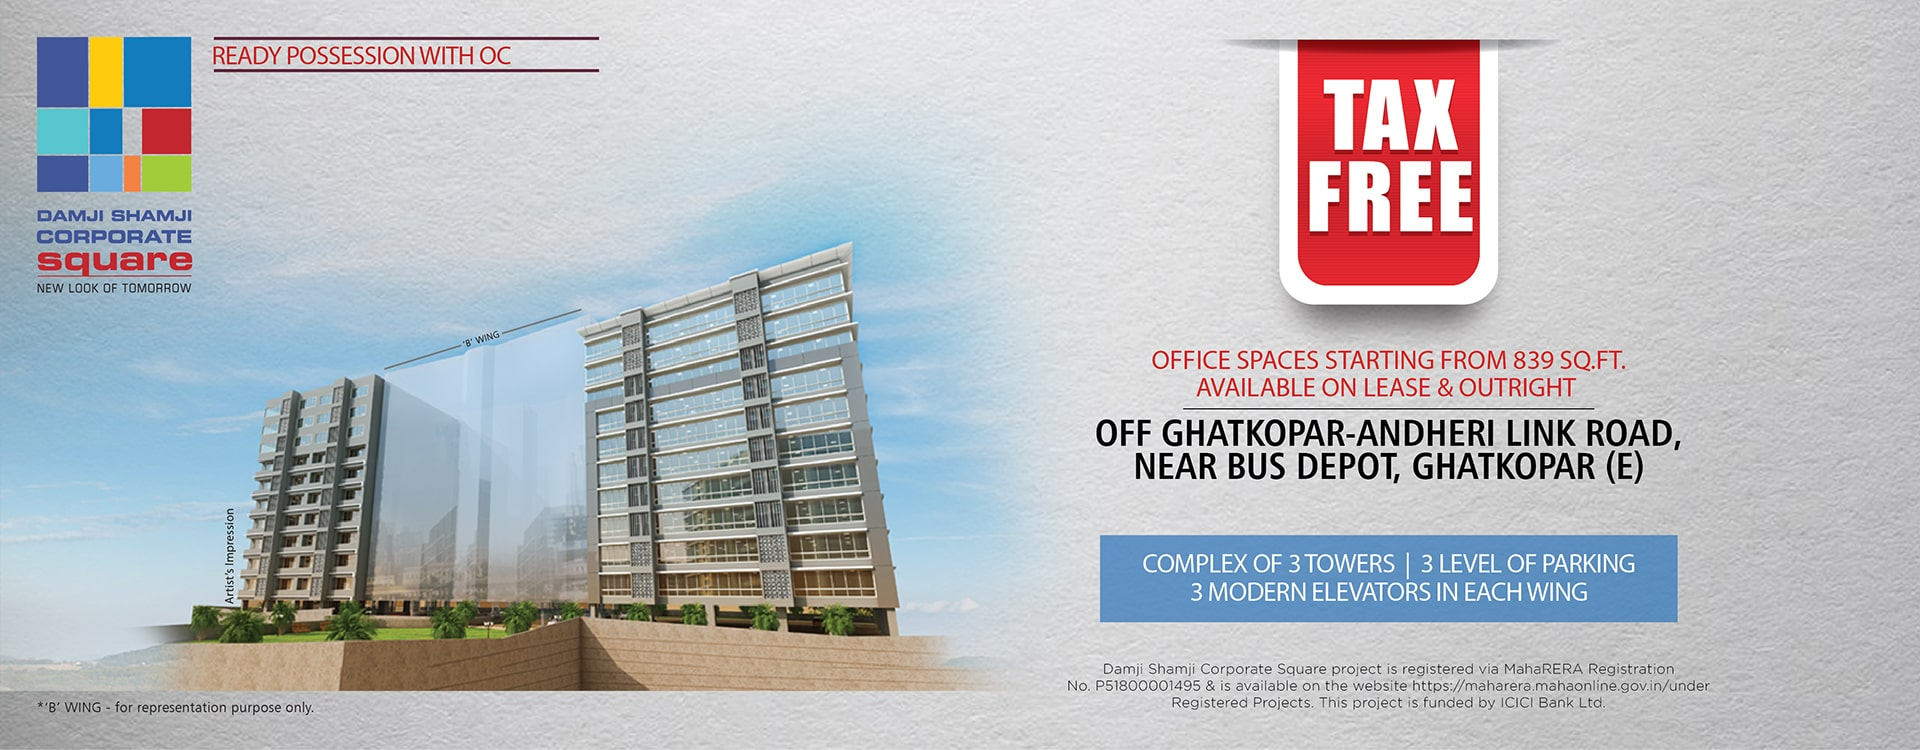 Office Spaces & Commercial Properties in Damji Shamji Corporate Square - Ghatkopar